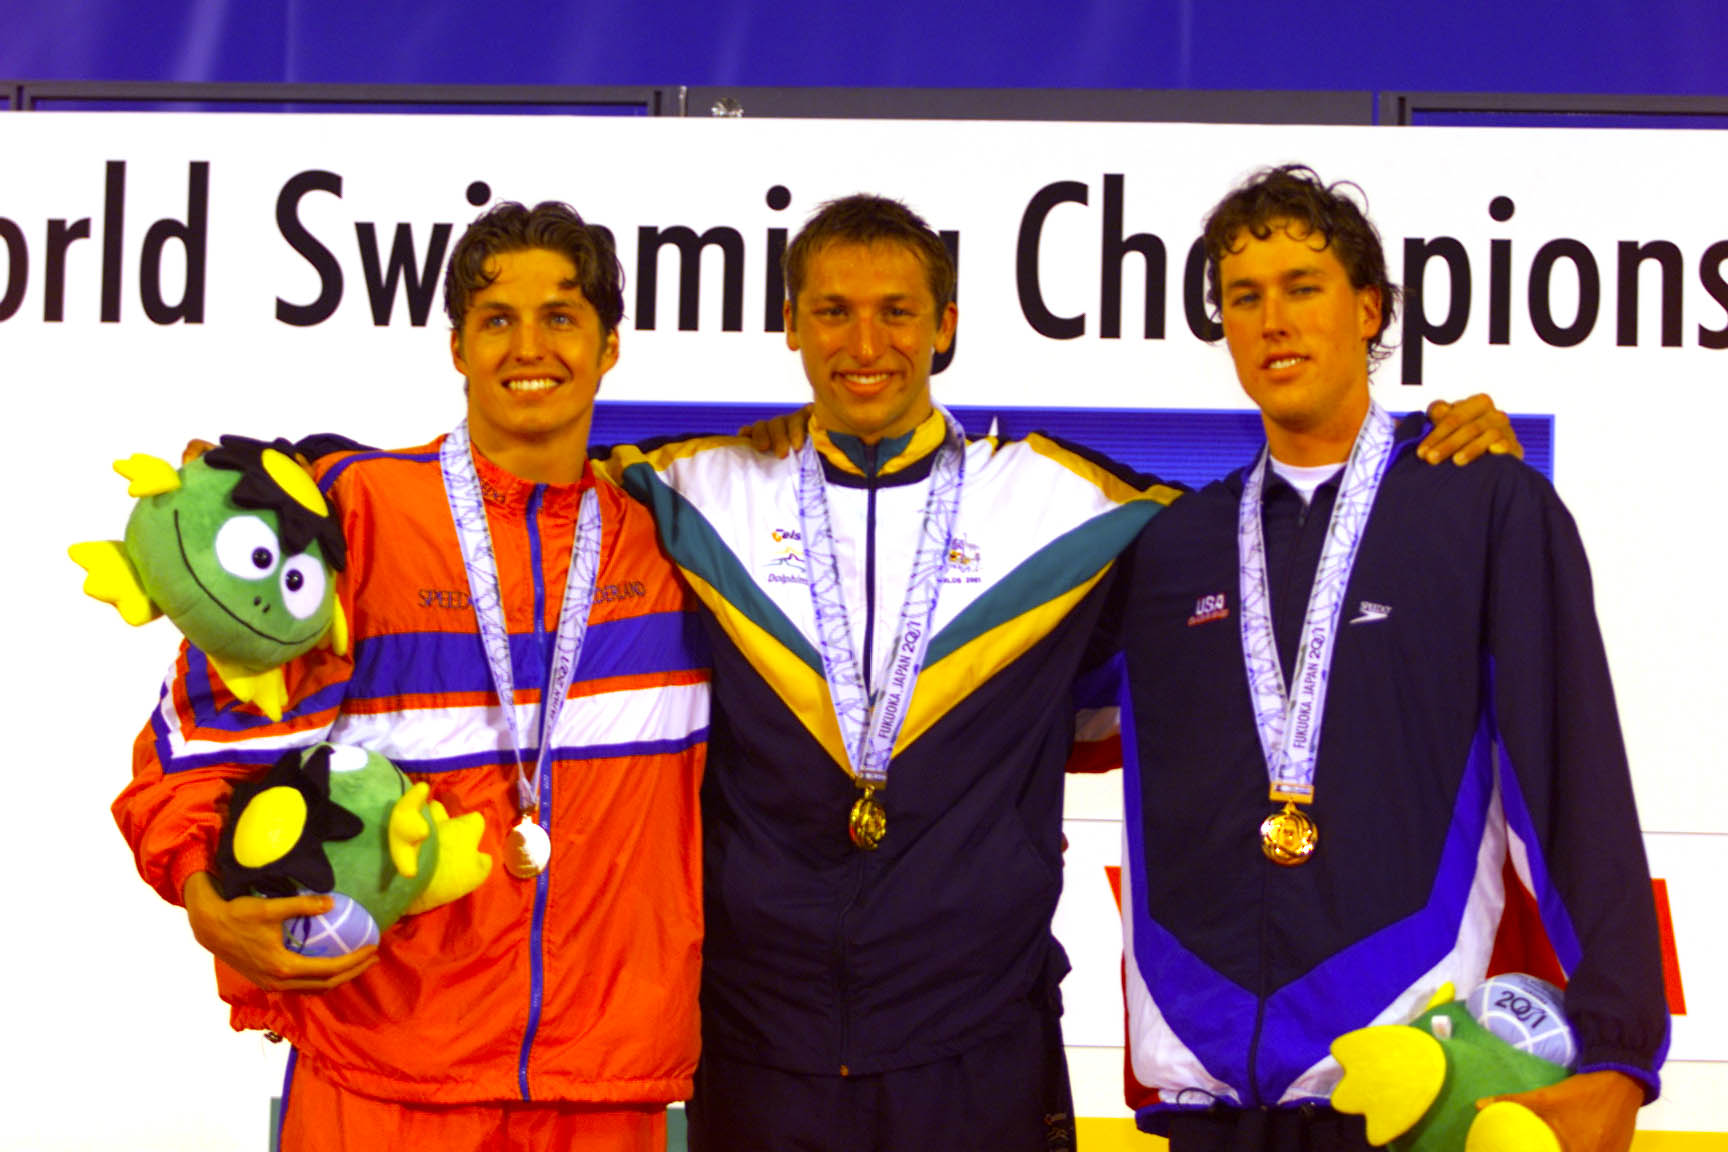 24 Jul 2001:   Pieter Van Den Hoogenband of the Netherlands (left-silver), Ian Thorpe of Australia (gold-center), and Klete Keller of the USA (right-bronze) stand on the medal podium following the men's 200M Freestyle during the finals at the Marine Messe Pool during the World Swimming Champs in Fukuoka, Japan. DIGITAL IMAGE. Mandatory Credit: Donald Miralle/ALLSPORT